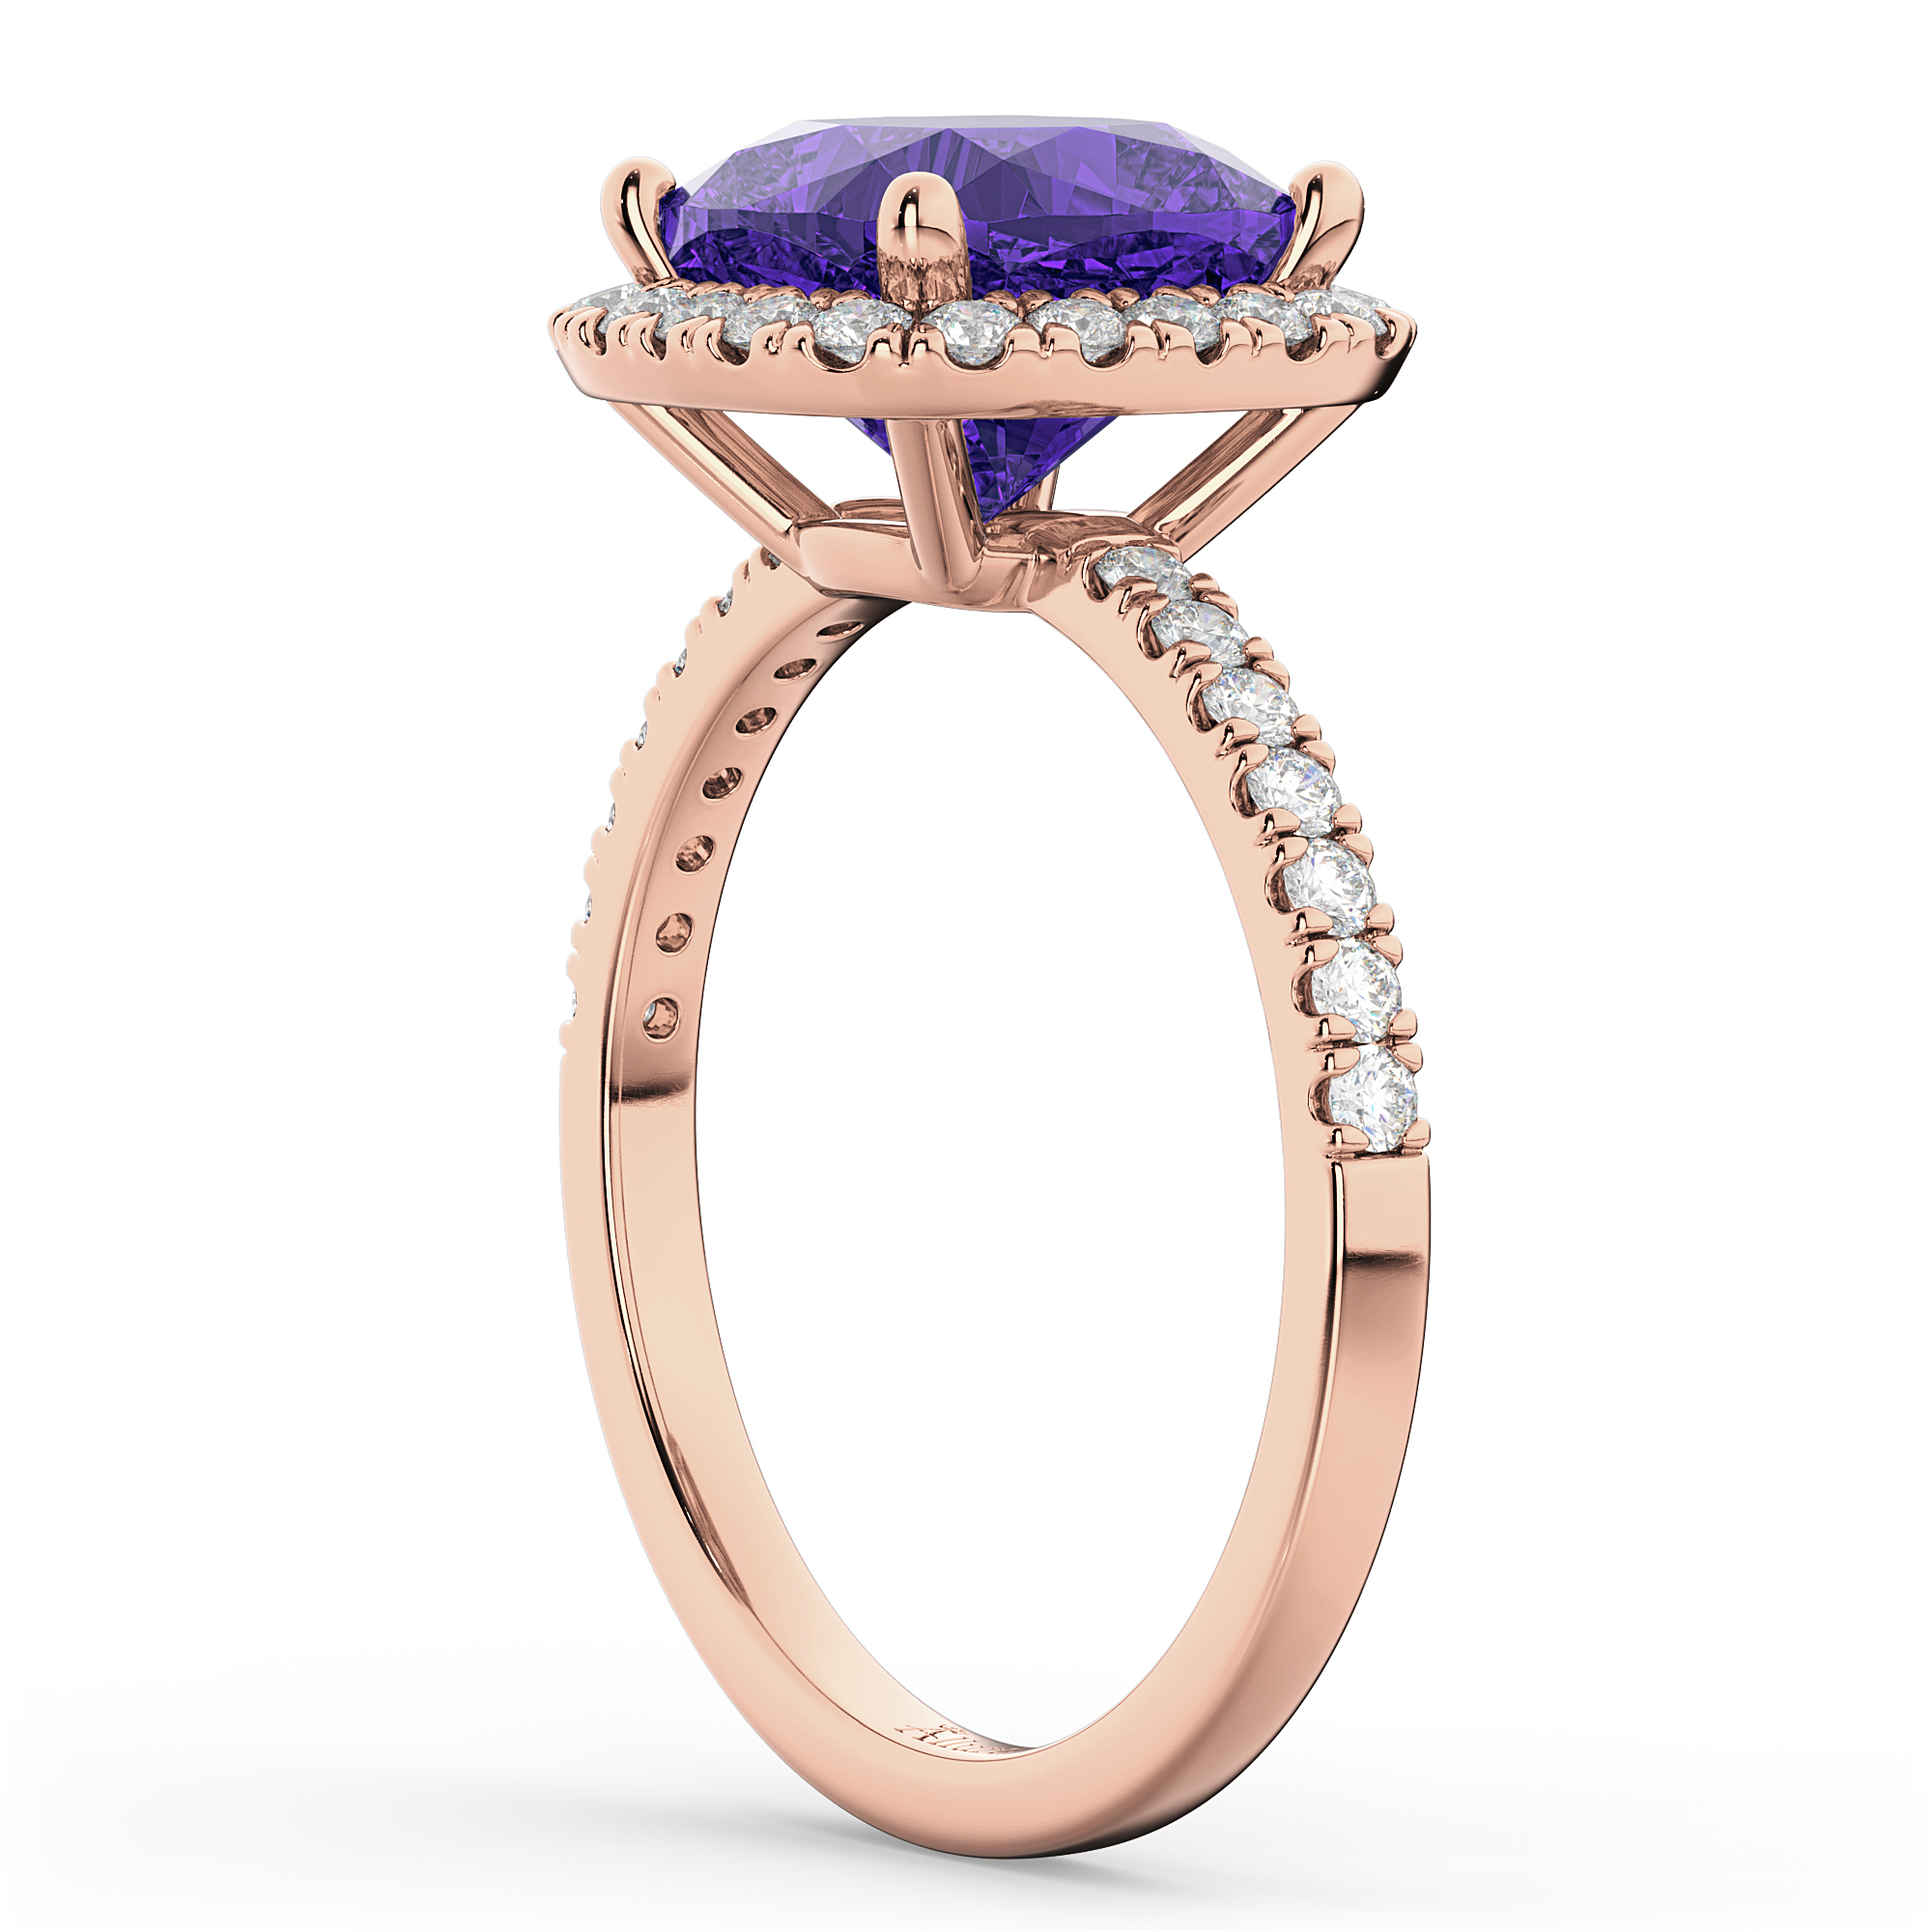 design amethist of ring alsayegh gallery beautiful rings wedding amethyst and engagement lovely diamond set